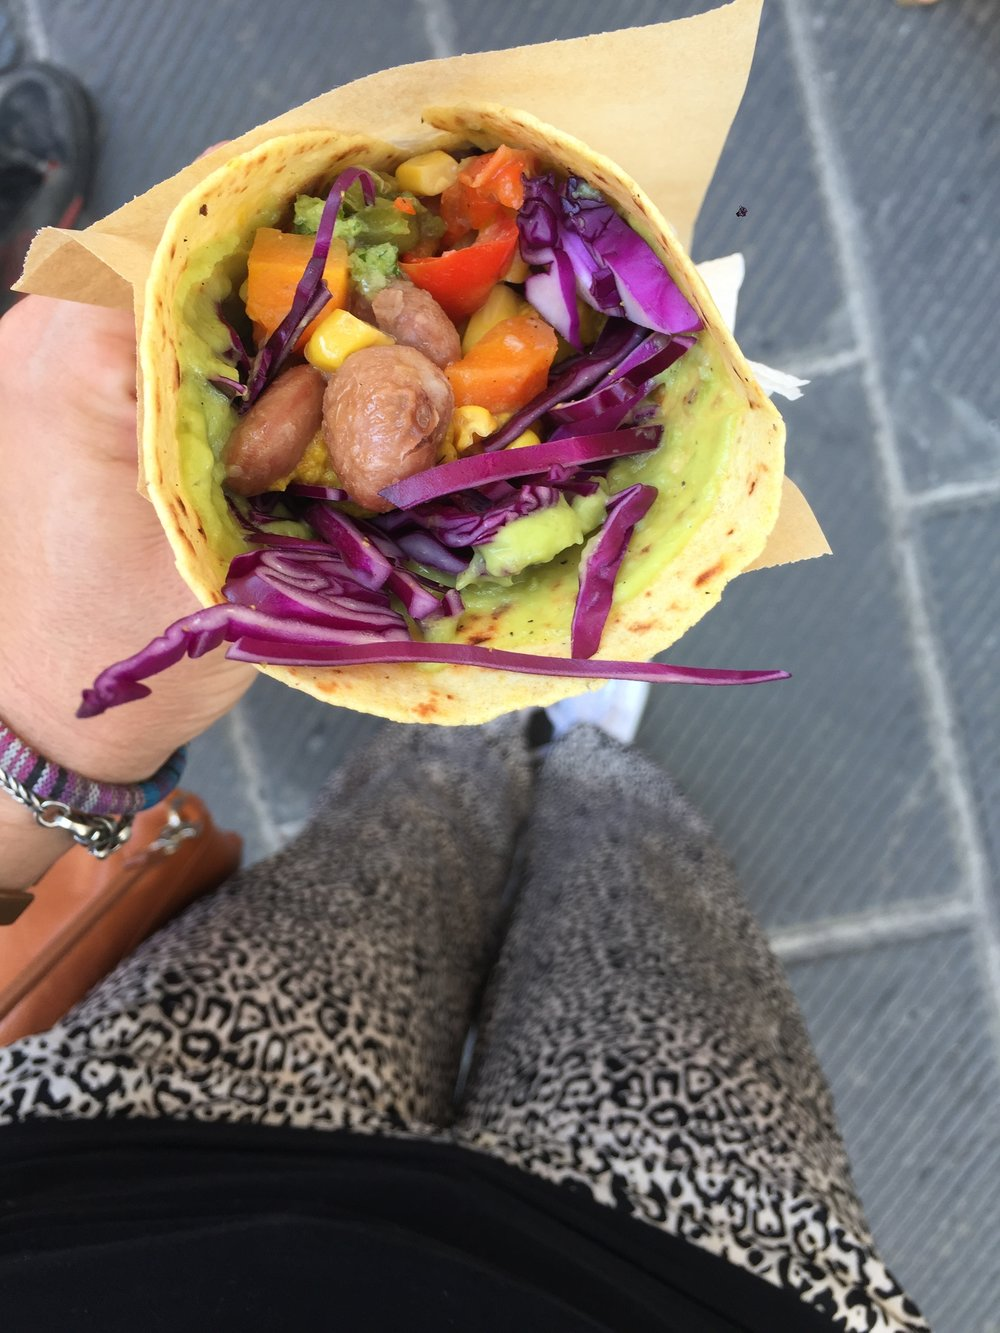 Sometimes self-care is a vegan burrito even if everyone around you is eating pork #italy